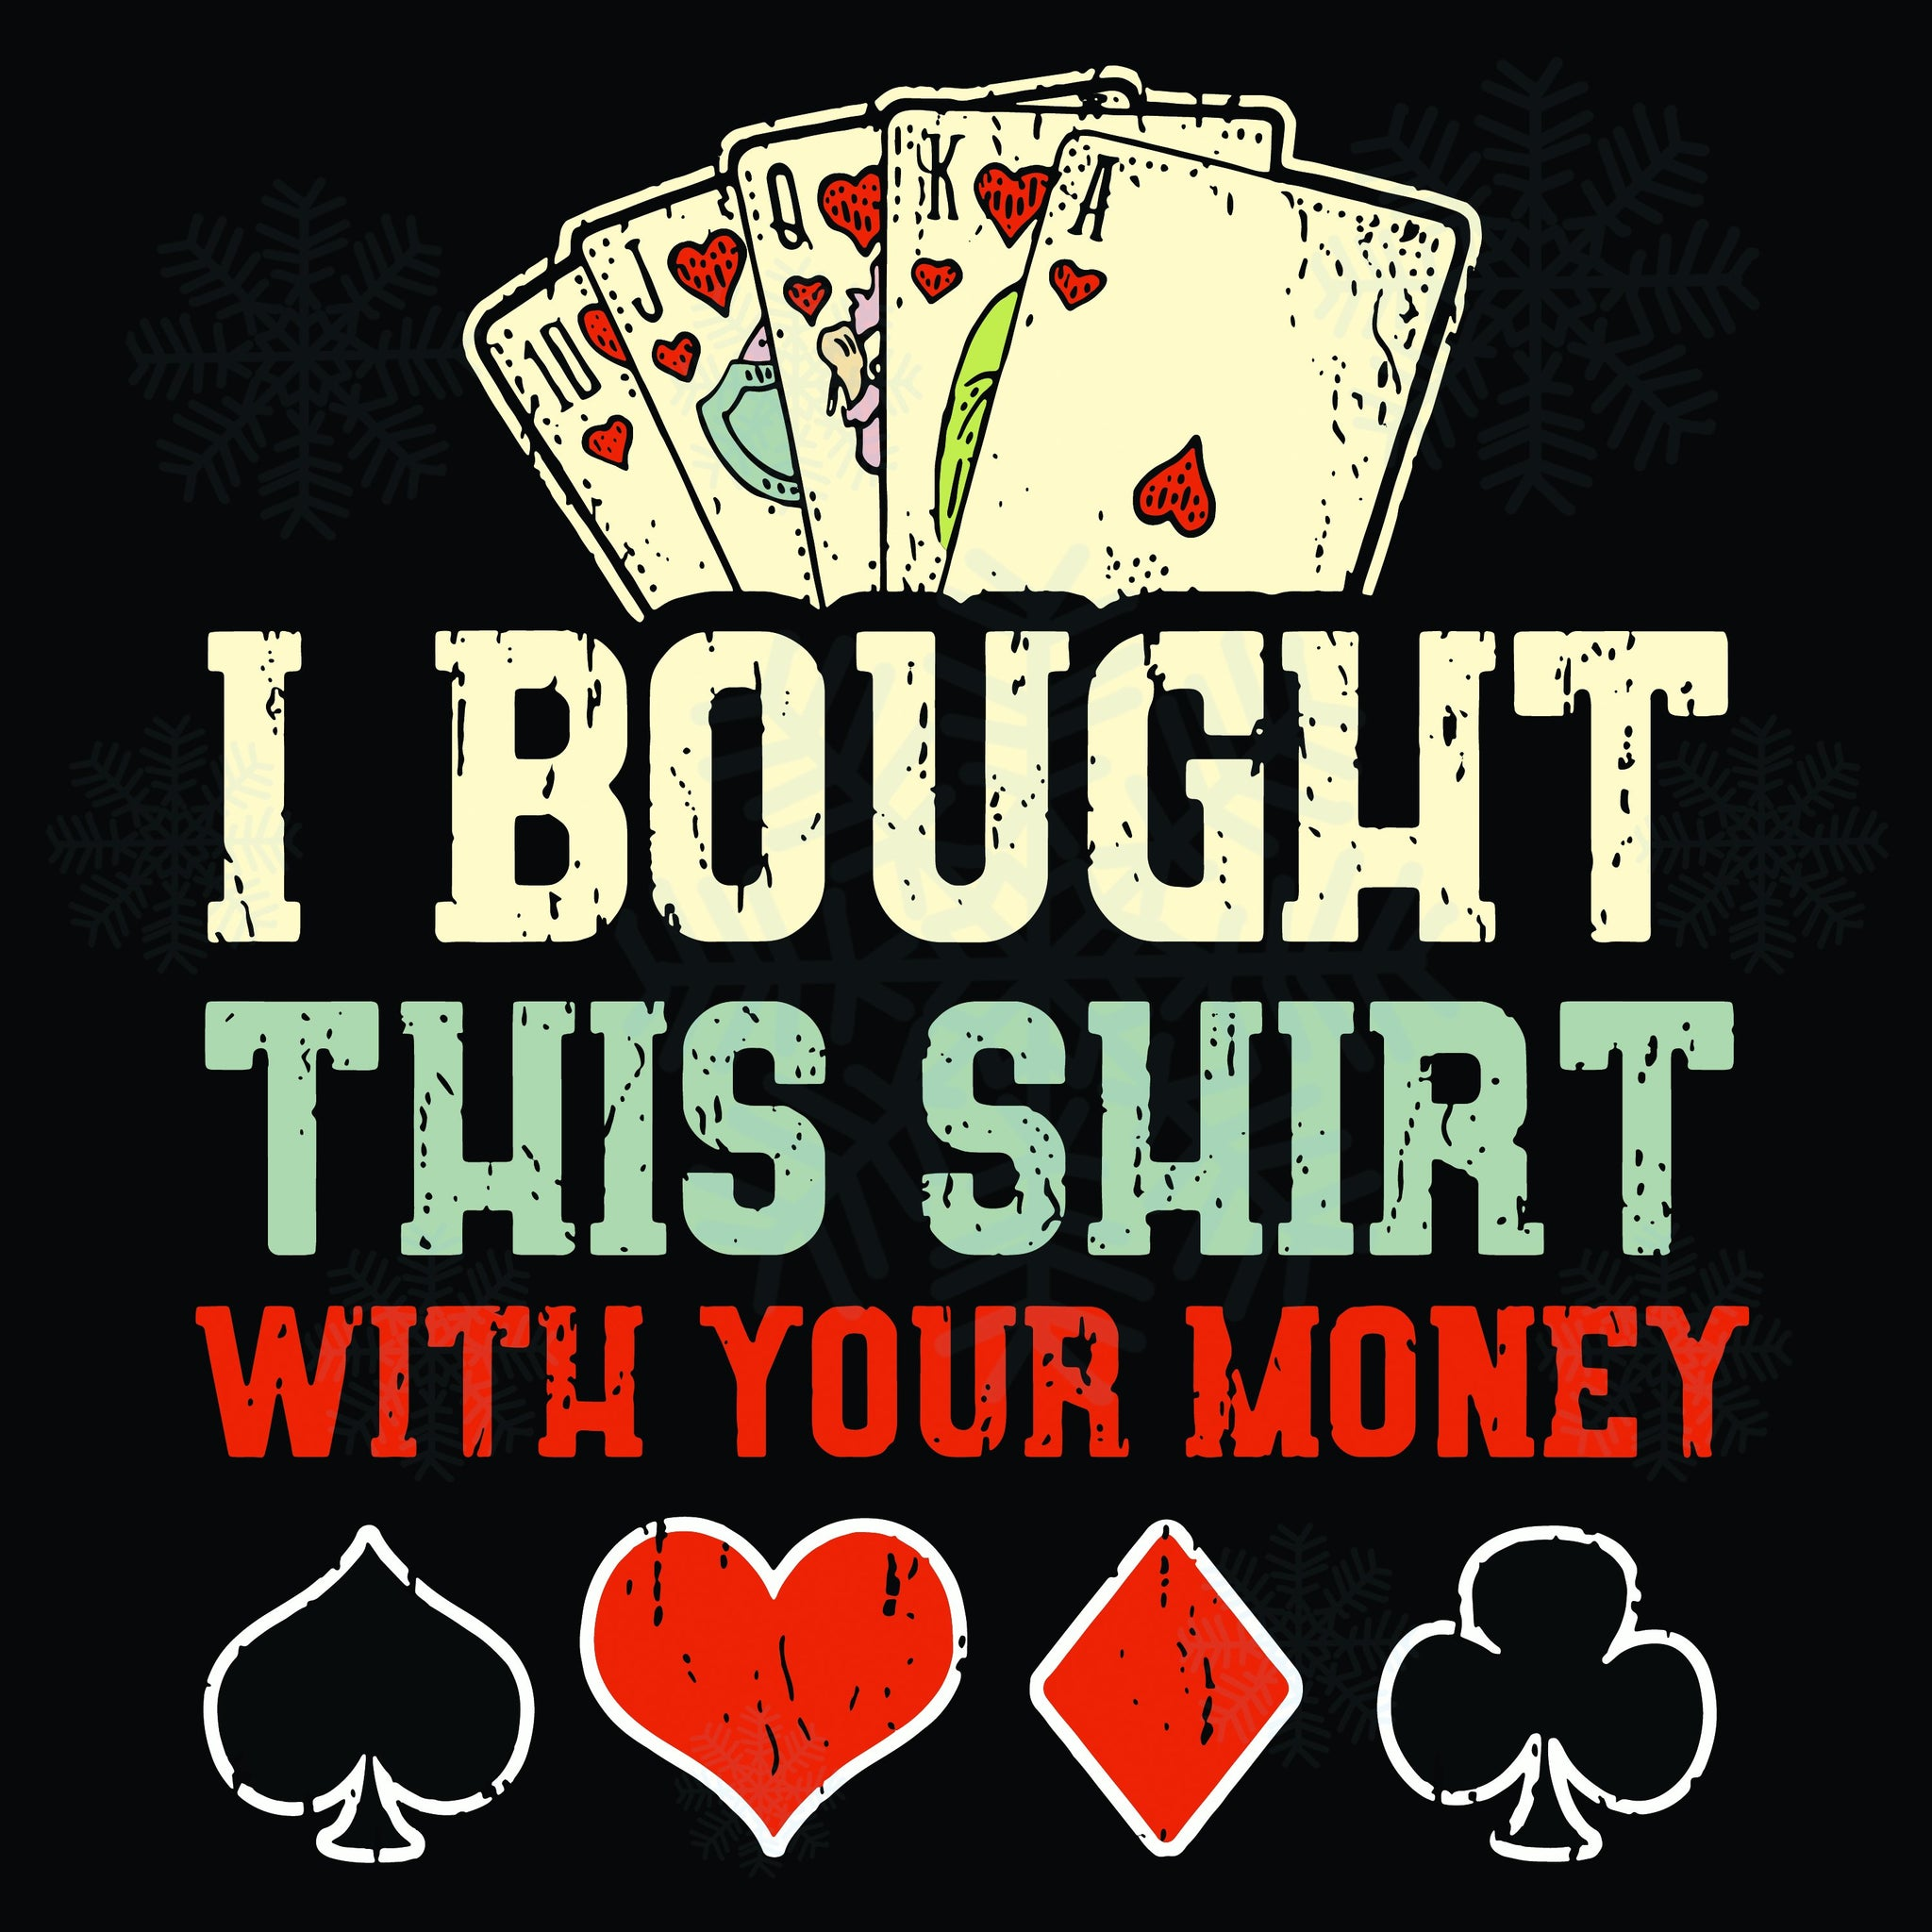 I bought this shirt with your money , funny poker, casino shirt, poker player gift, poker svg, funny casino, poker player, money poker gambling, gambler svg, trending svg, Files For Silhouette, Files For Cricut, SVG, DXF, EPS, PNG, Instant Download